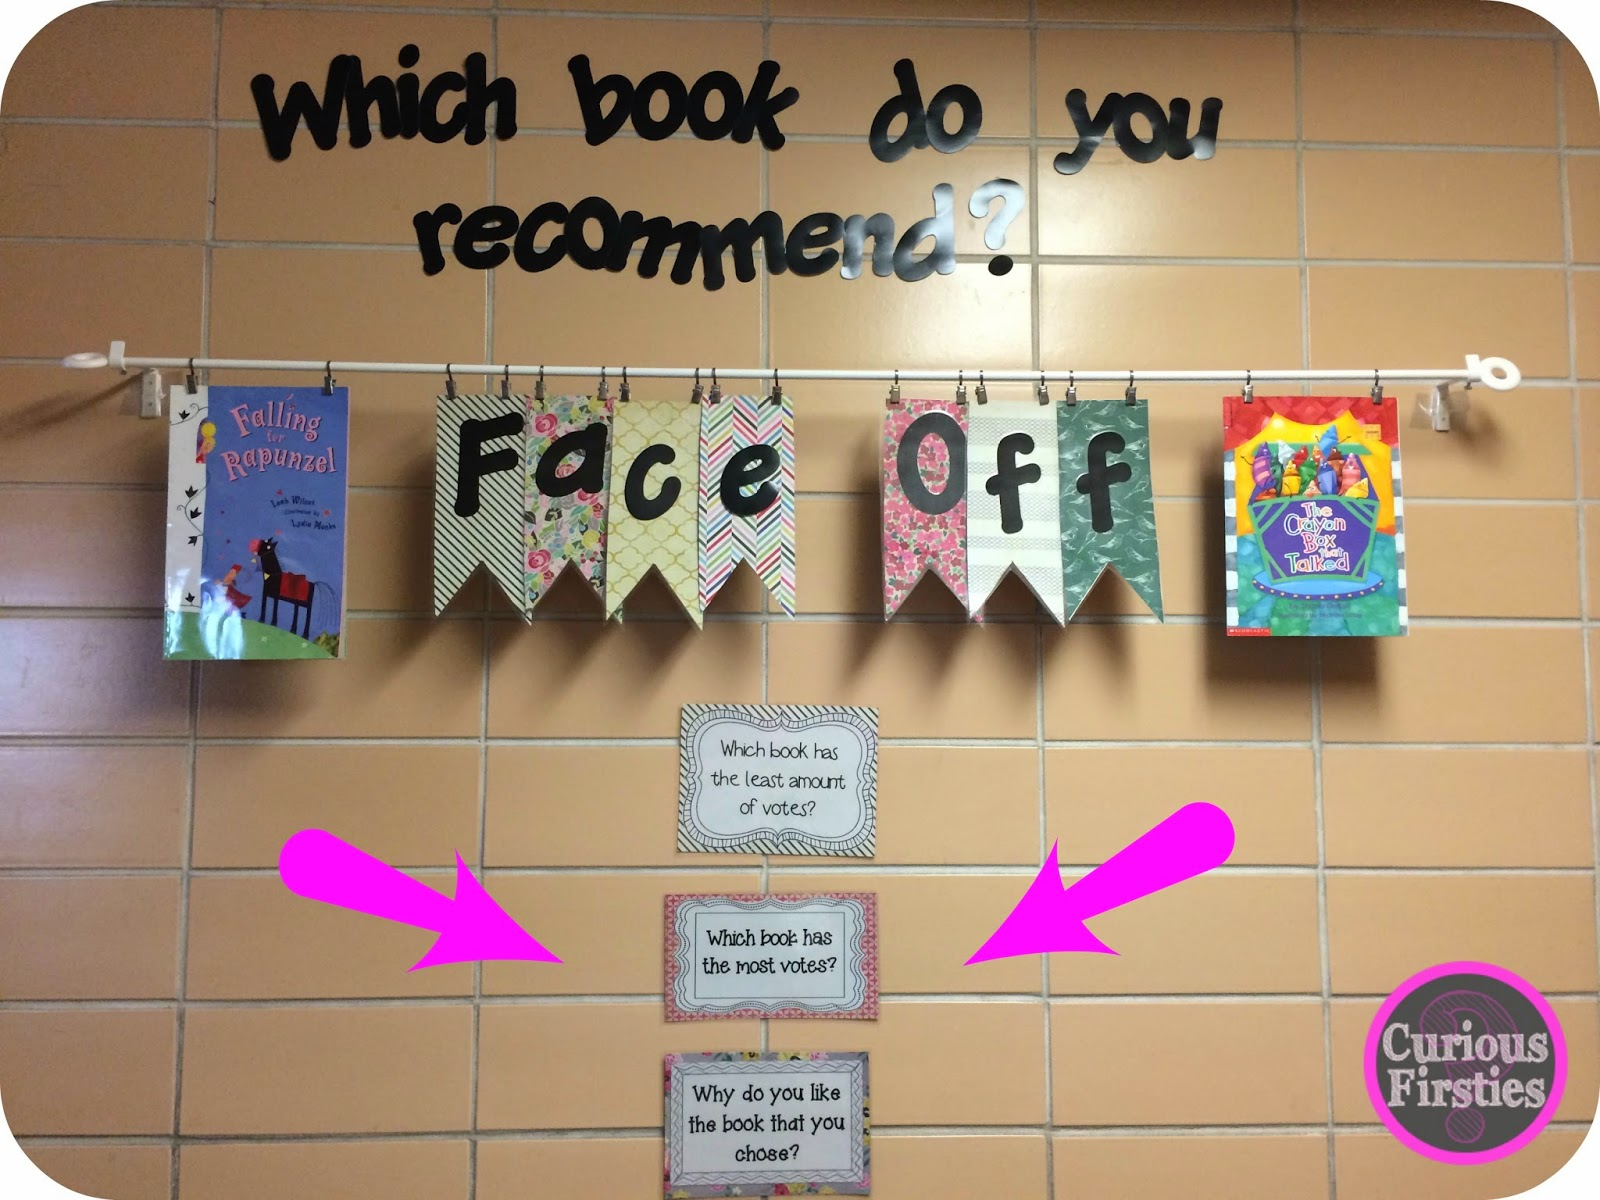 engage students by asking them to recommend books to others